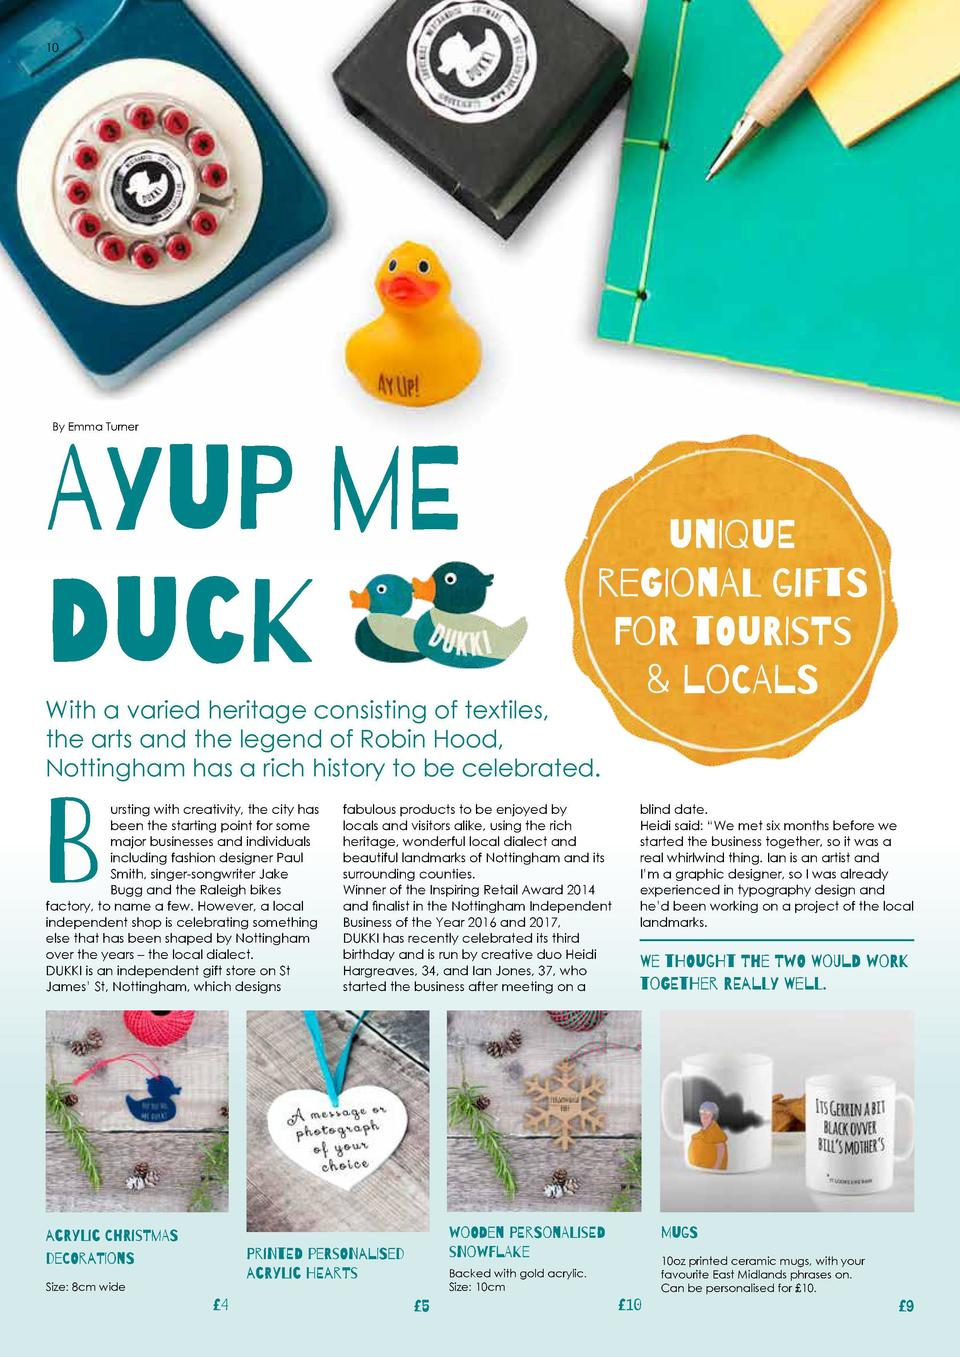 10  11  By Emma Turner  Ayup Me Duck     The shop has been open almost as long as we   ve known each other, which is just ...